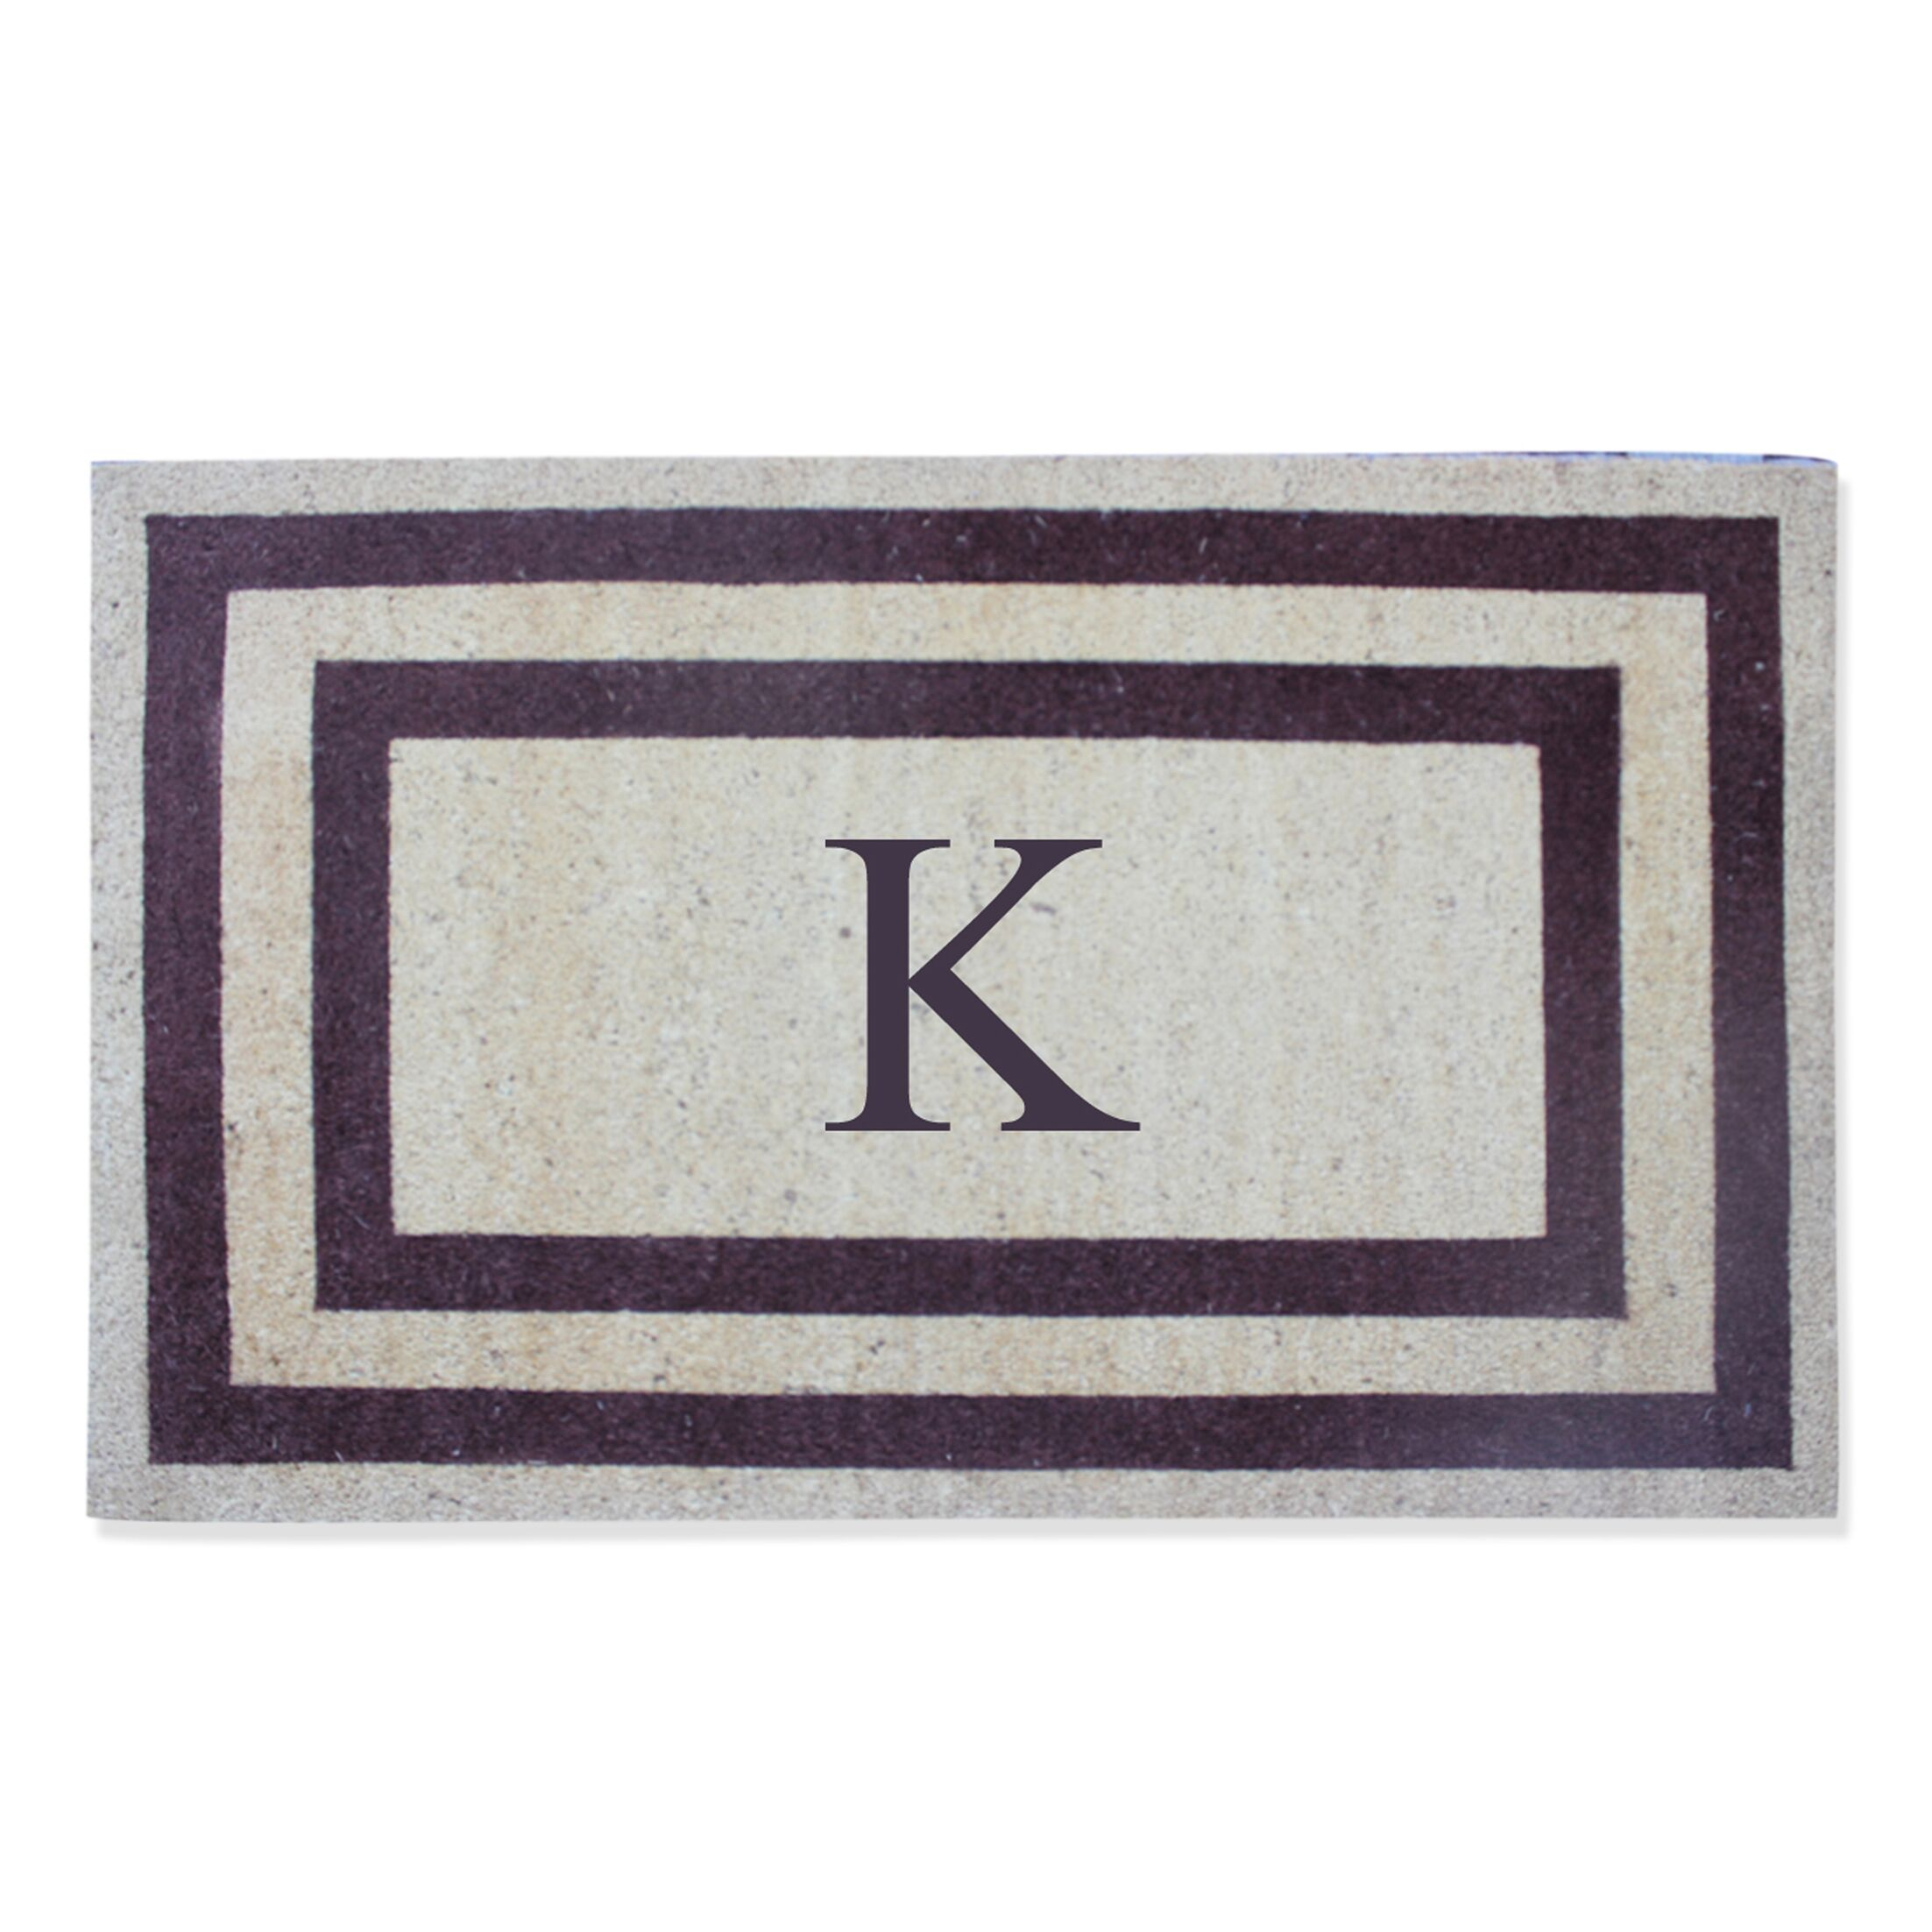 First Impression Engineered Anti Shred Treated Terrance Border Doormat Letter: K